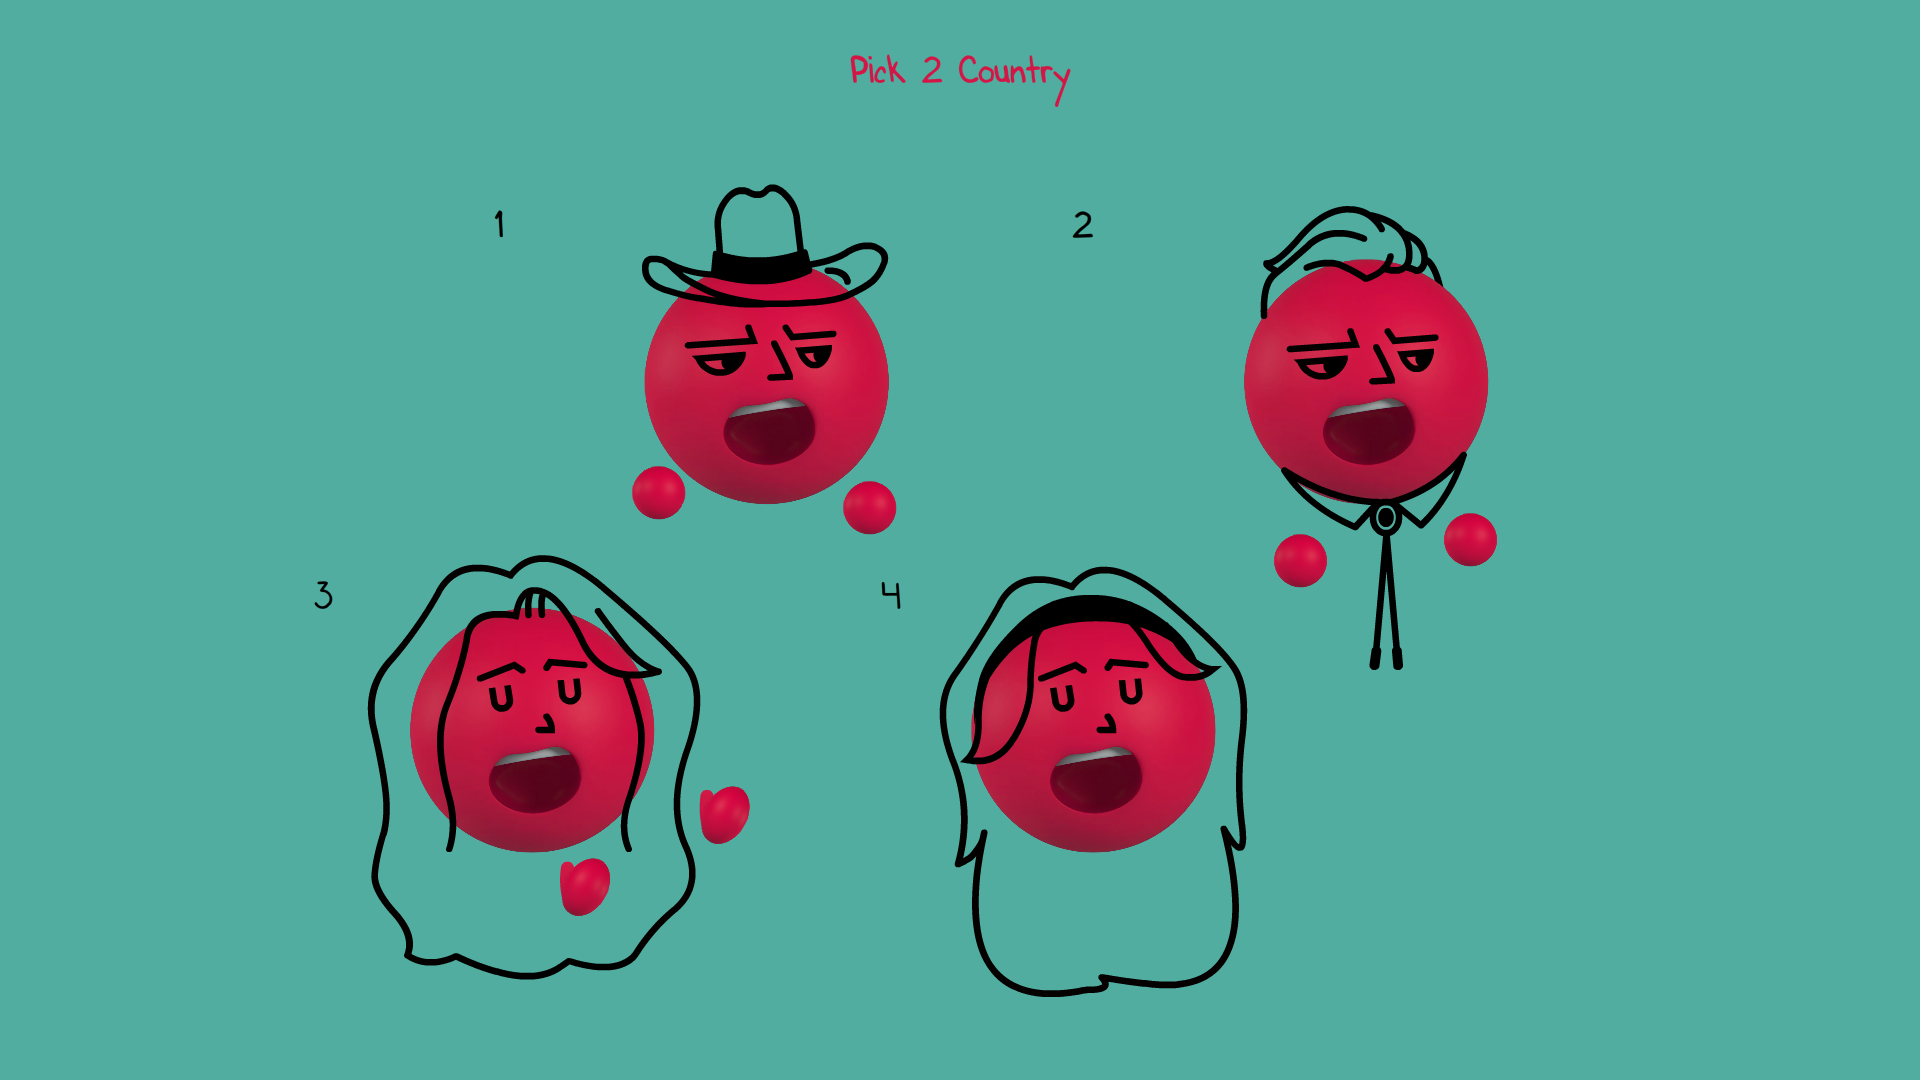 WCLC_country_design_v018.png